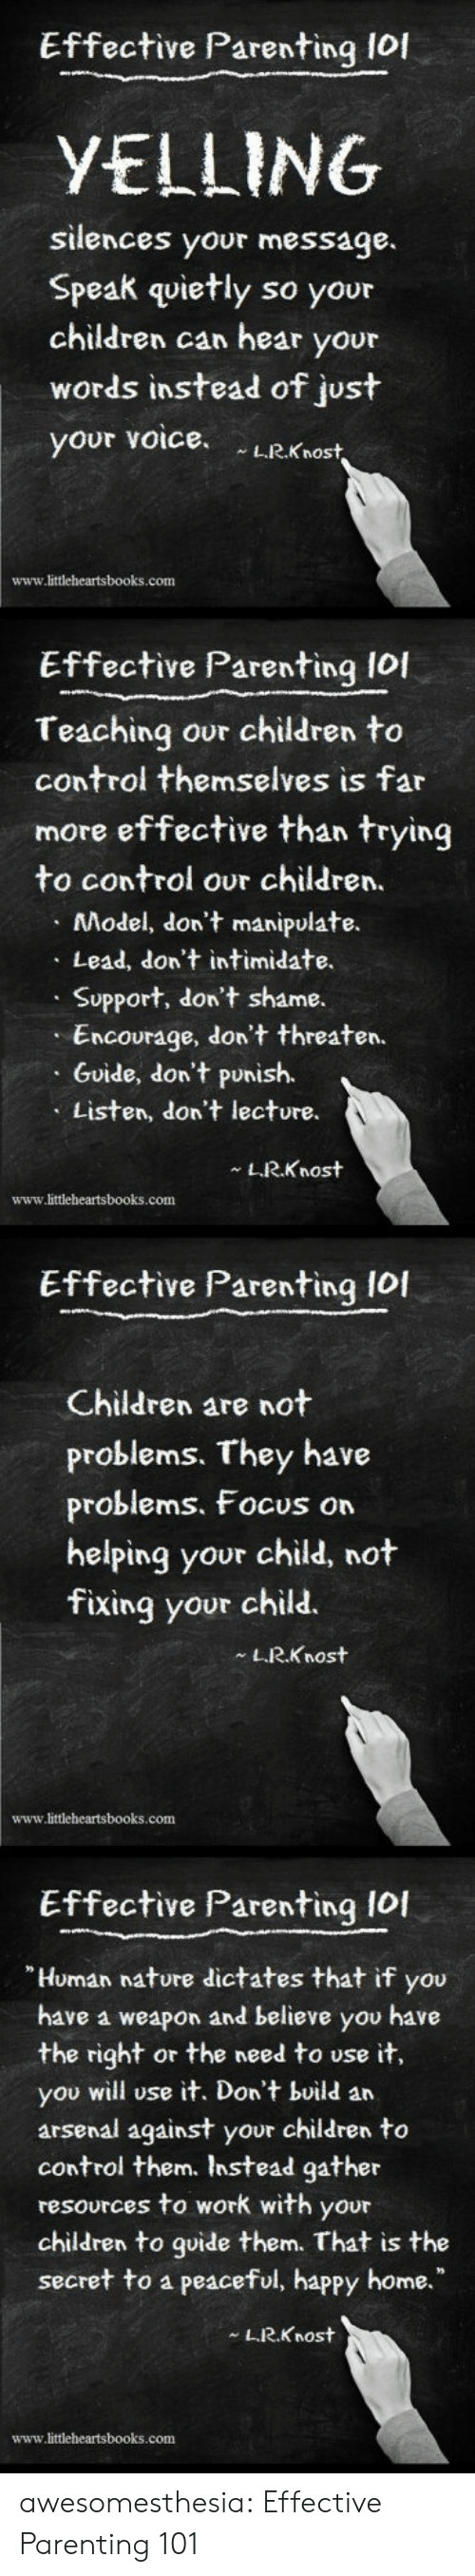 """intimidate: Effective Parenting lof  YELLING  silences your message.  Speak quietly so your  children can hear your  words instead of just  your voice LRKnost  www.littleheartsbooks.conm  Effective Parenting lol  Teaching our children to  control themselves is far  more effective than trying  to control our children.  Model, don't manipulate.  Lead, don't intimidate.  Support, don't shame.  Encourage, don't threaten.  Guide, don't punish.  Listen, don't lecture.  L.R.Knost  www.littleheartsbooks.com  Effective Parenting Iol  Children are not  problems. They have  problems, Focus on  helping your child, not  fixing your child.  LRKnost  www.littleheartsbooks.com  Effective Parenting I0I  Human nature dictates that if you  have a weapon and believe you have  the right or the need to use it,  you will use it. Don't build an  arsenal against your children to  control them. Instead gather  resources to work with your  children to goide them. That is the  secret to a peaceful, happy home.""""  L.R.Knost  www.littleheartsbooks.com awesomesthesia:  Effective Parenting 101"""